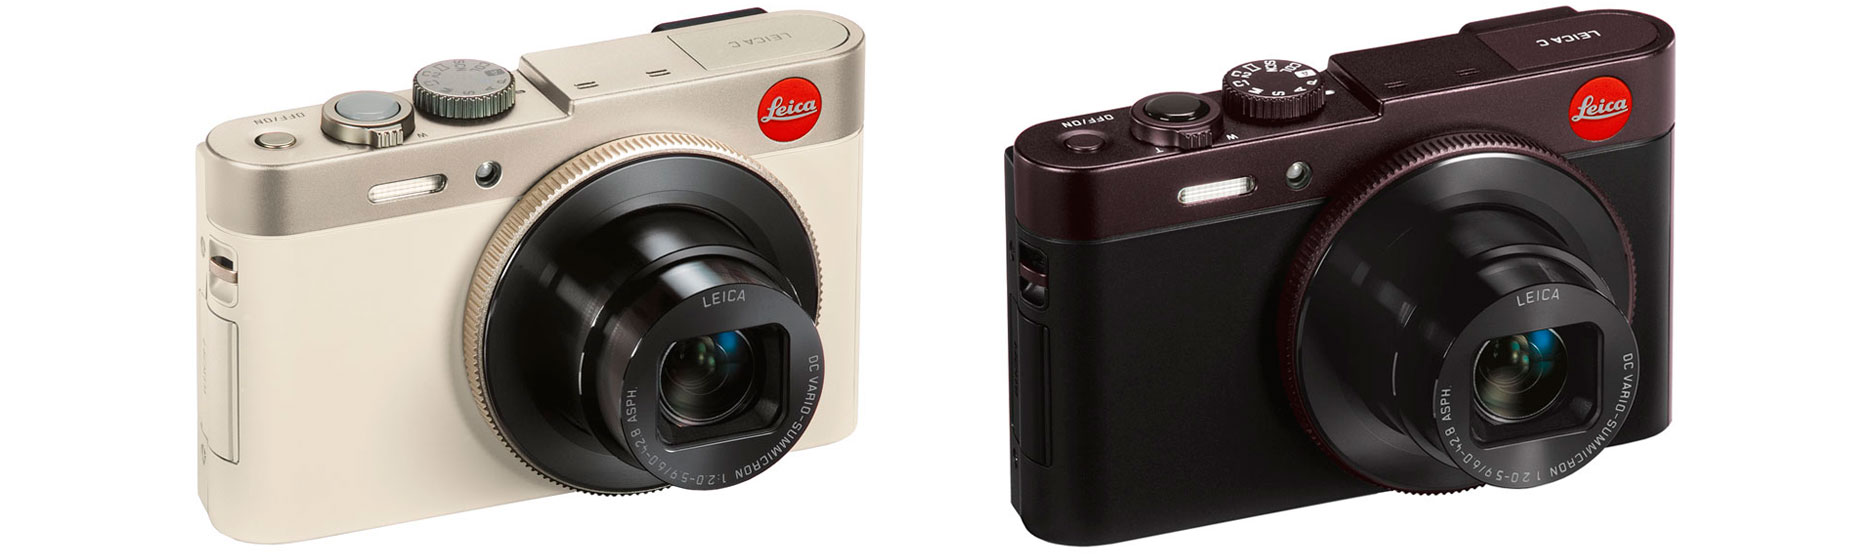 Leica-C_light-gold_dark-red-3d-web